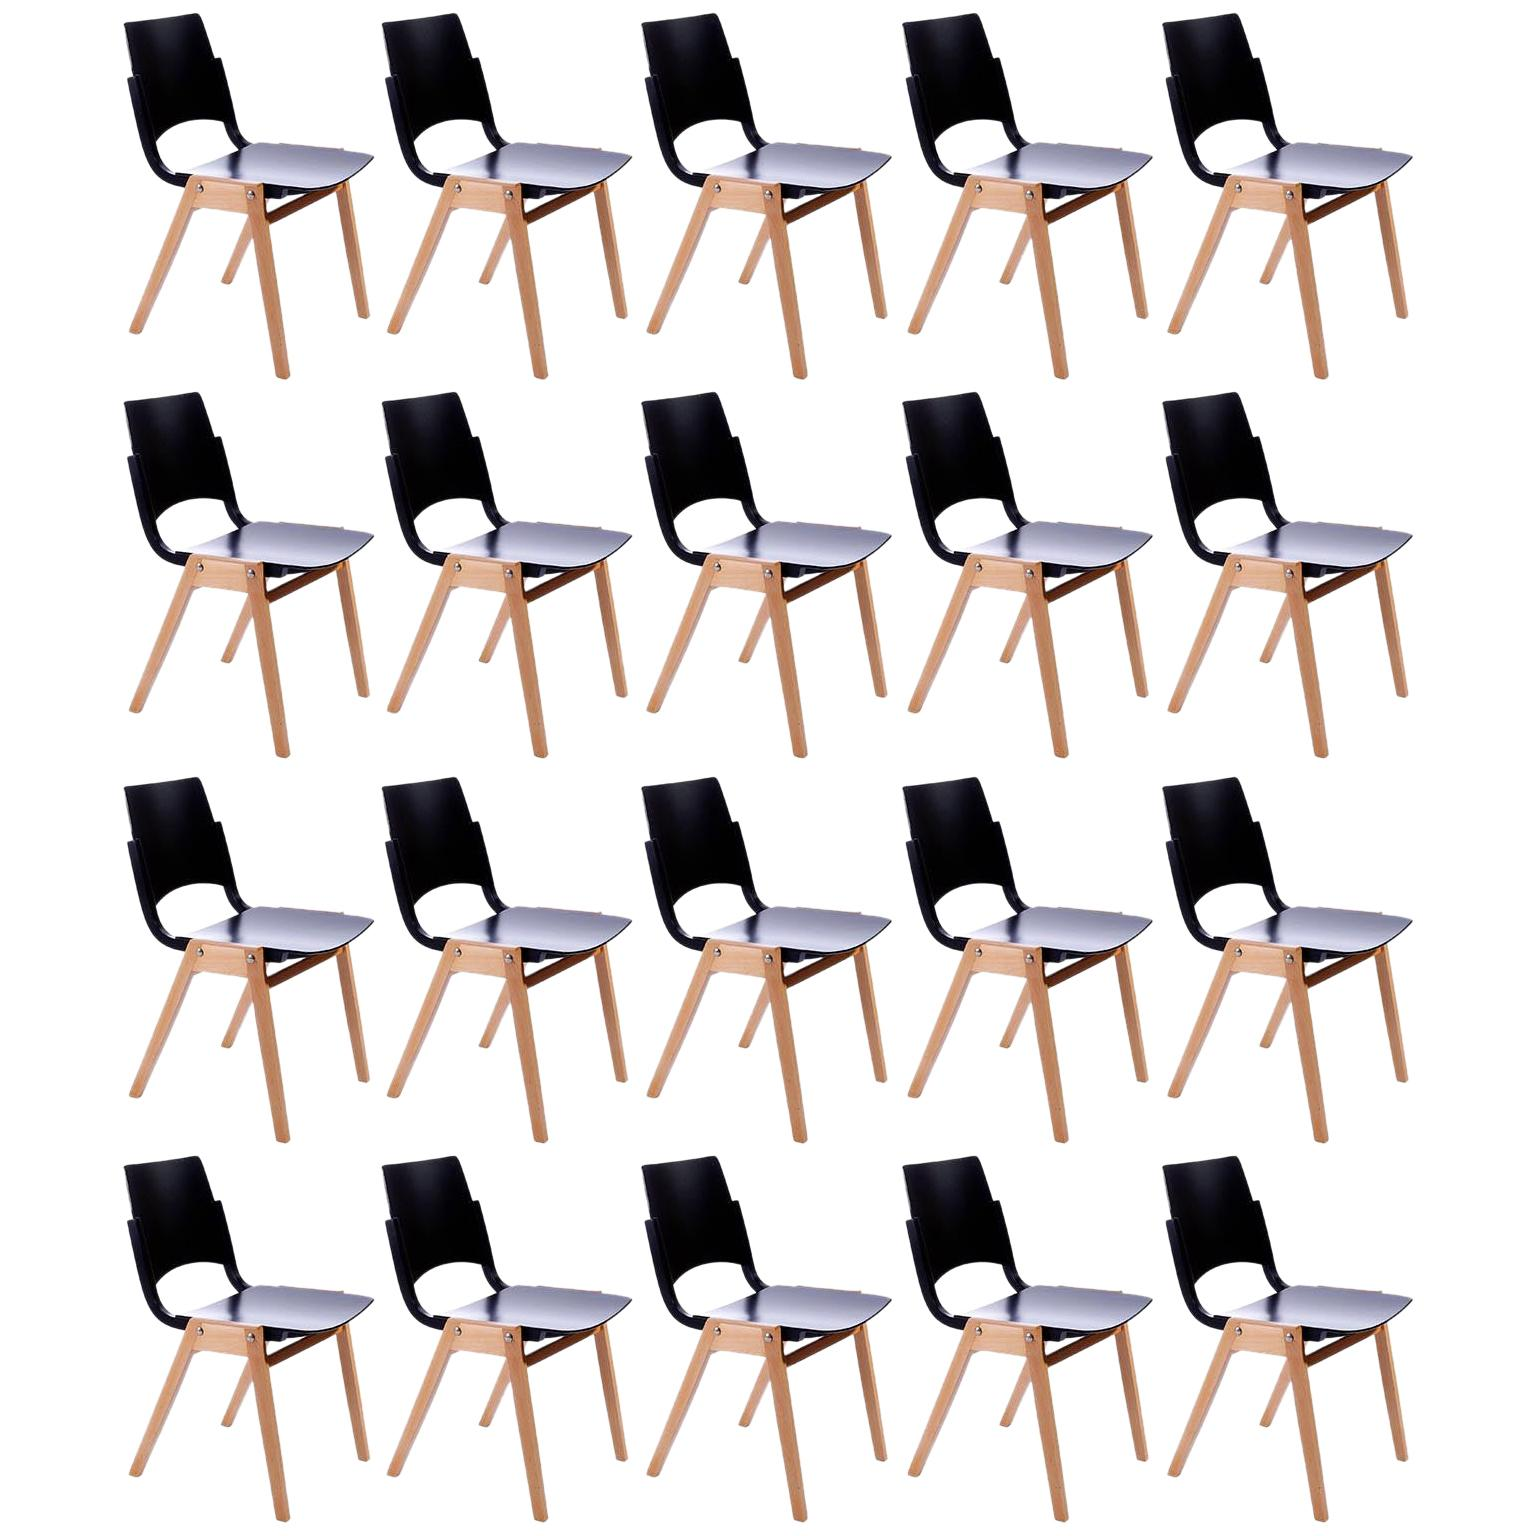 Set of 20 Roland Rainer Stacking Chairs P7, Bicolored Beech, Austria, 1952